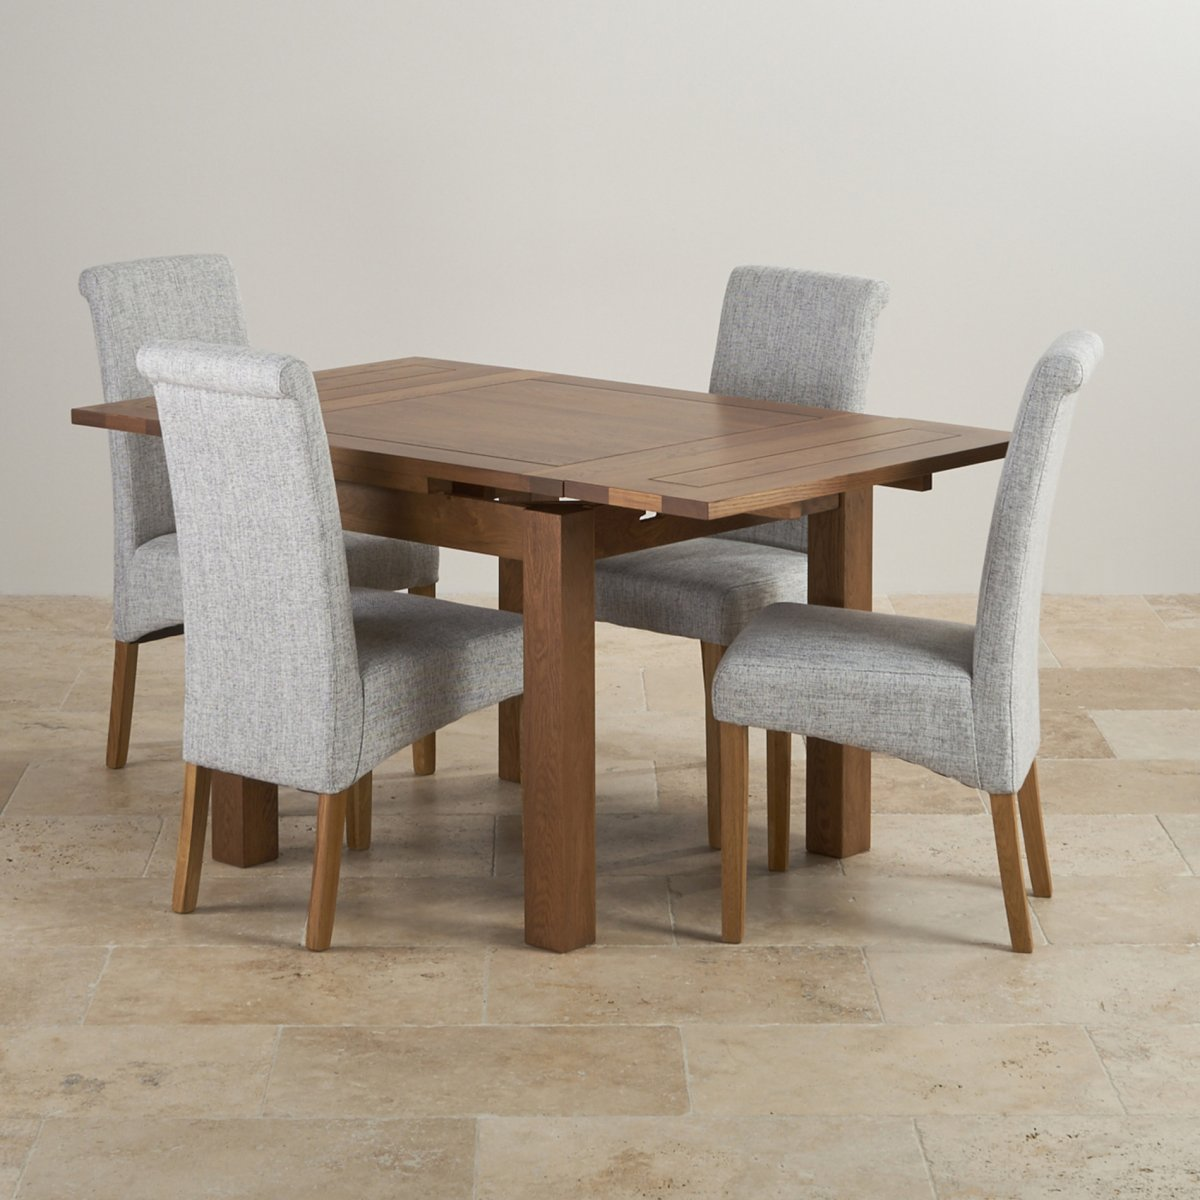 Rustic Solid Oak Dining Set   3ft Extending Table With 4 Scroll Back Plain  Grey Fabric Chairs